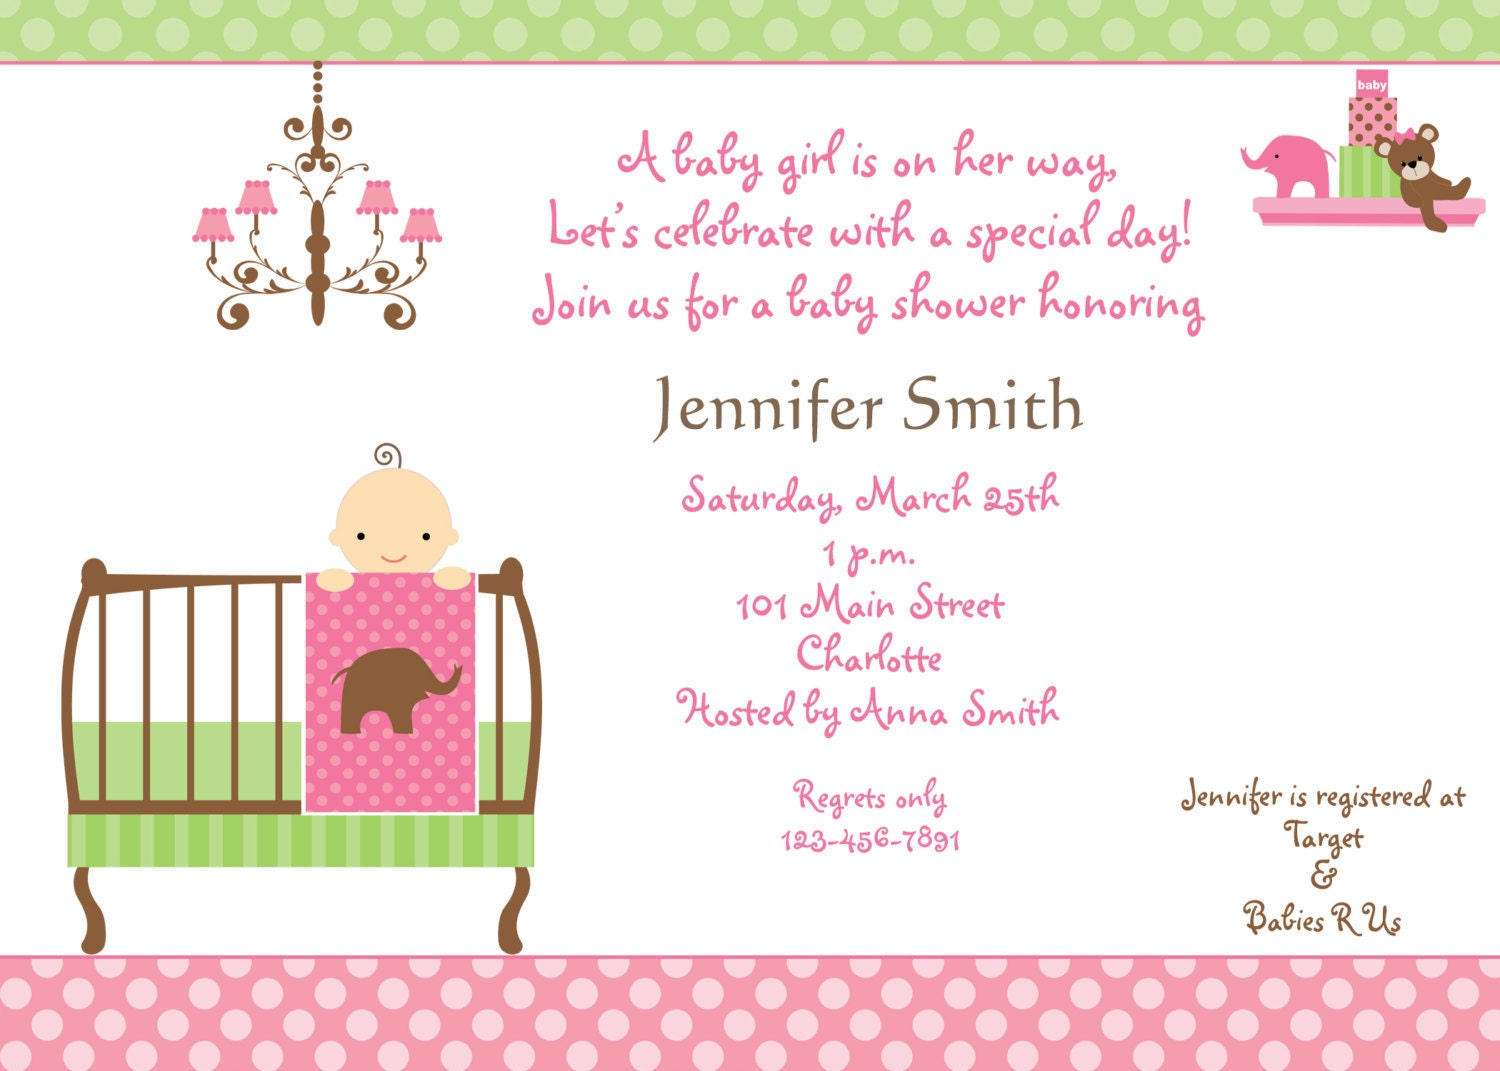 Baby Shower Invites Online Free with good invitations example